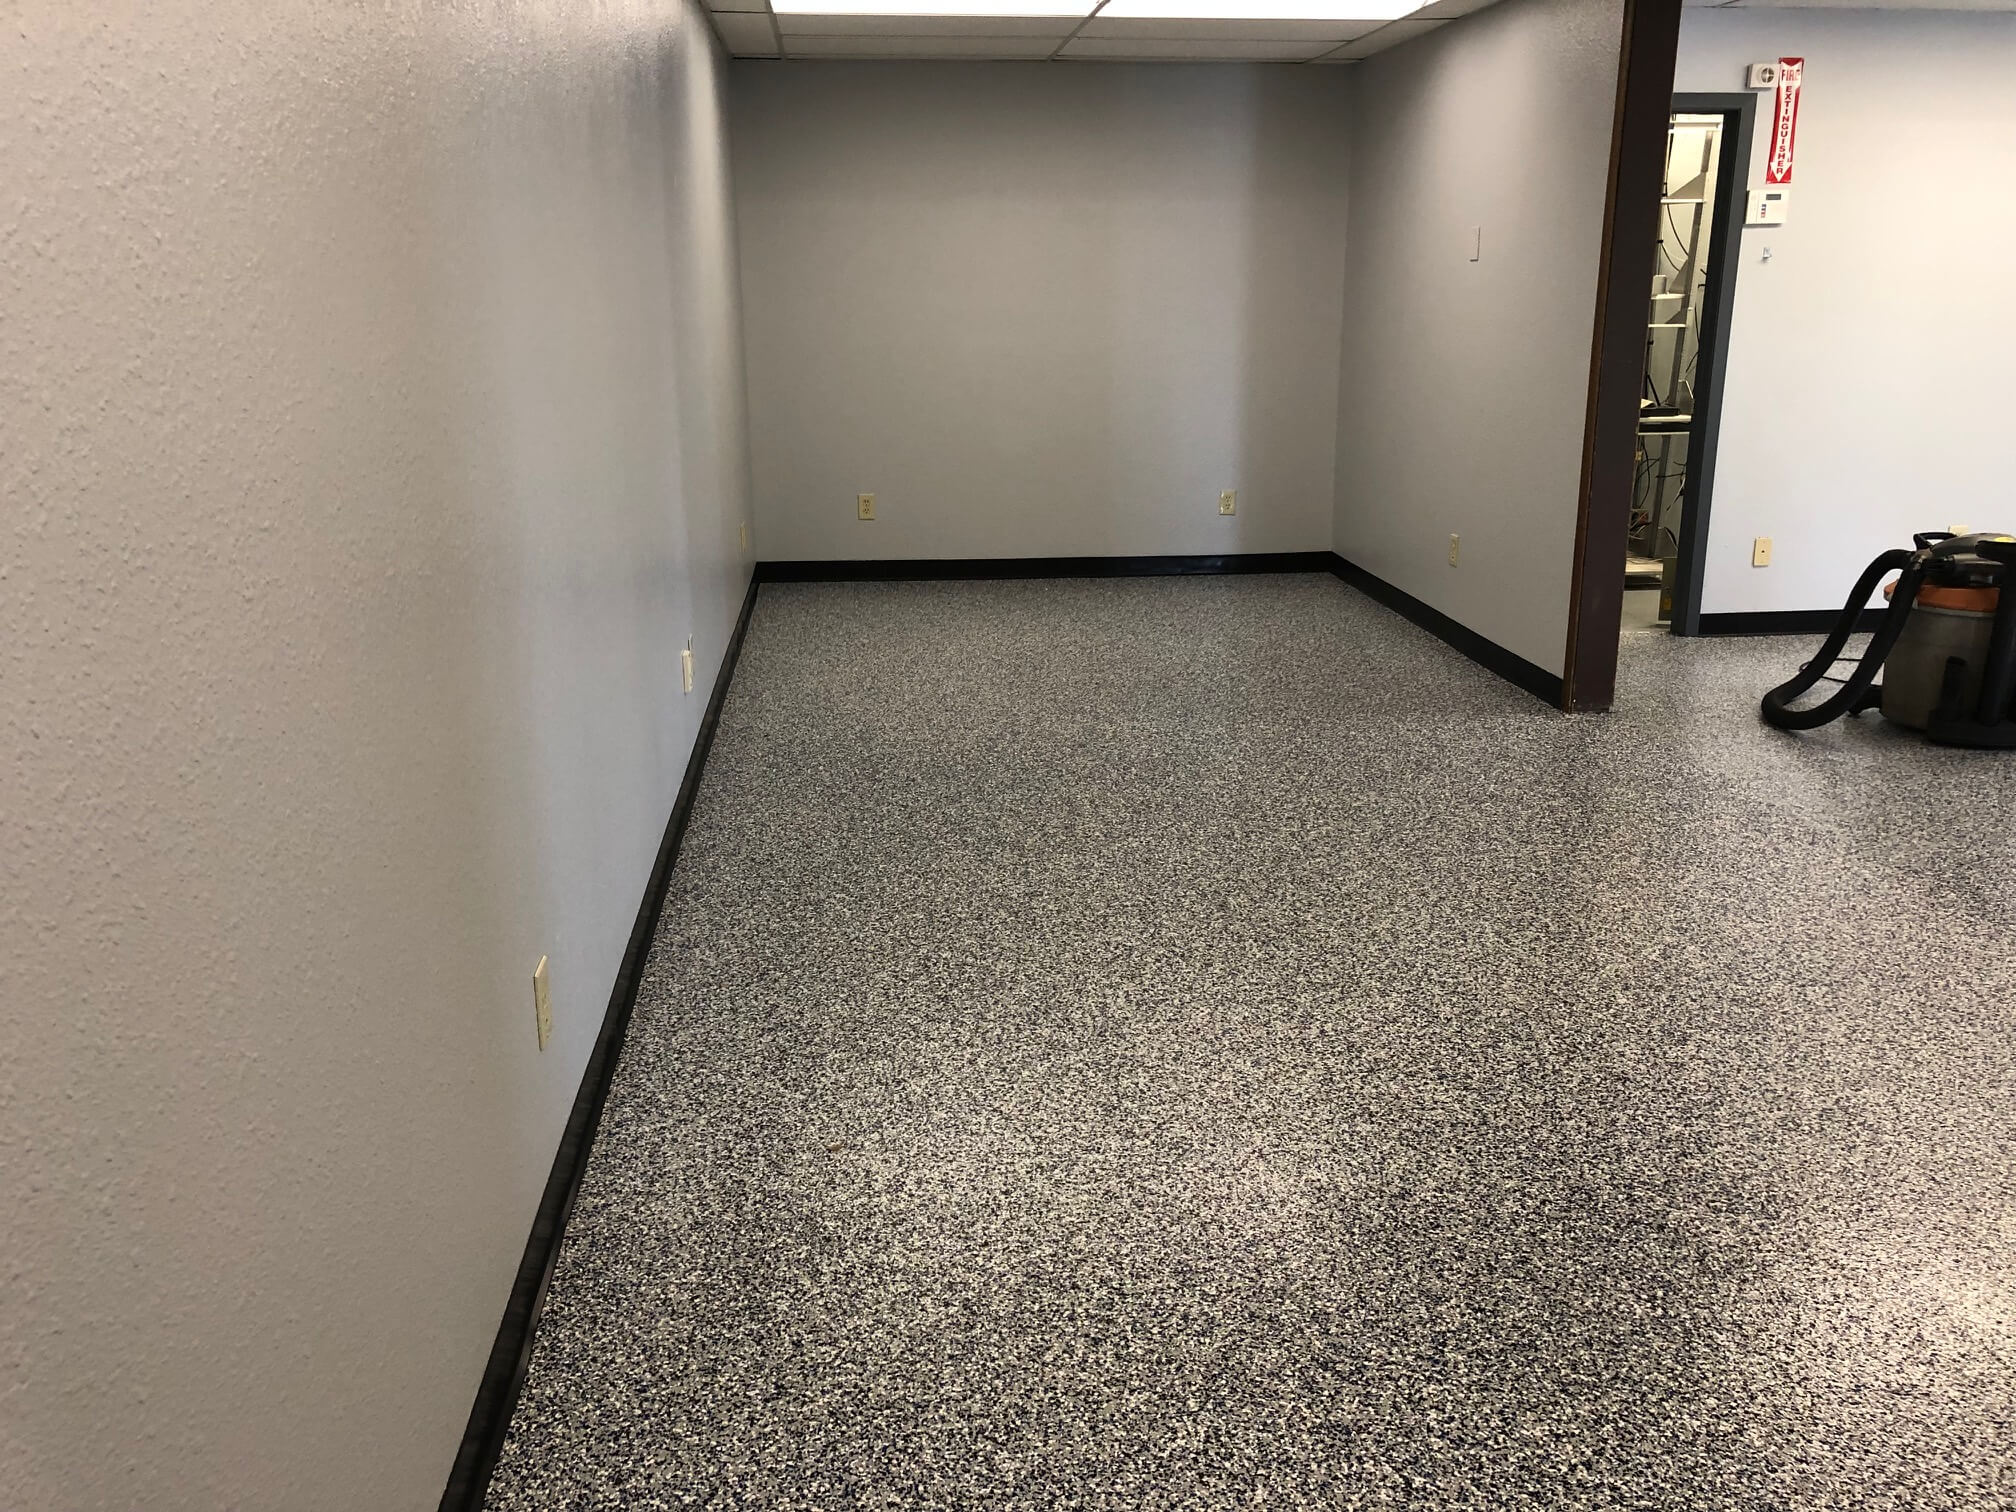 Garage Experts Epoxy Floor Mile High Coatings The Best House Painting Epoxy Floors In